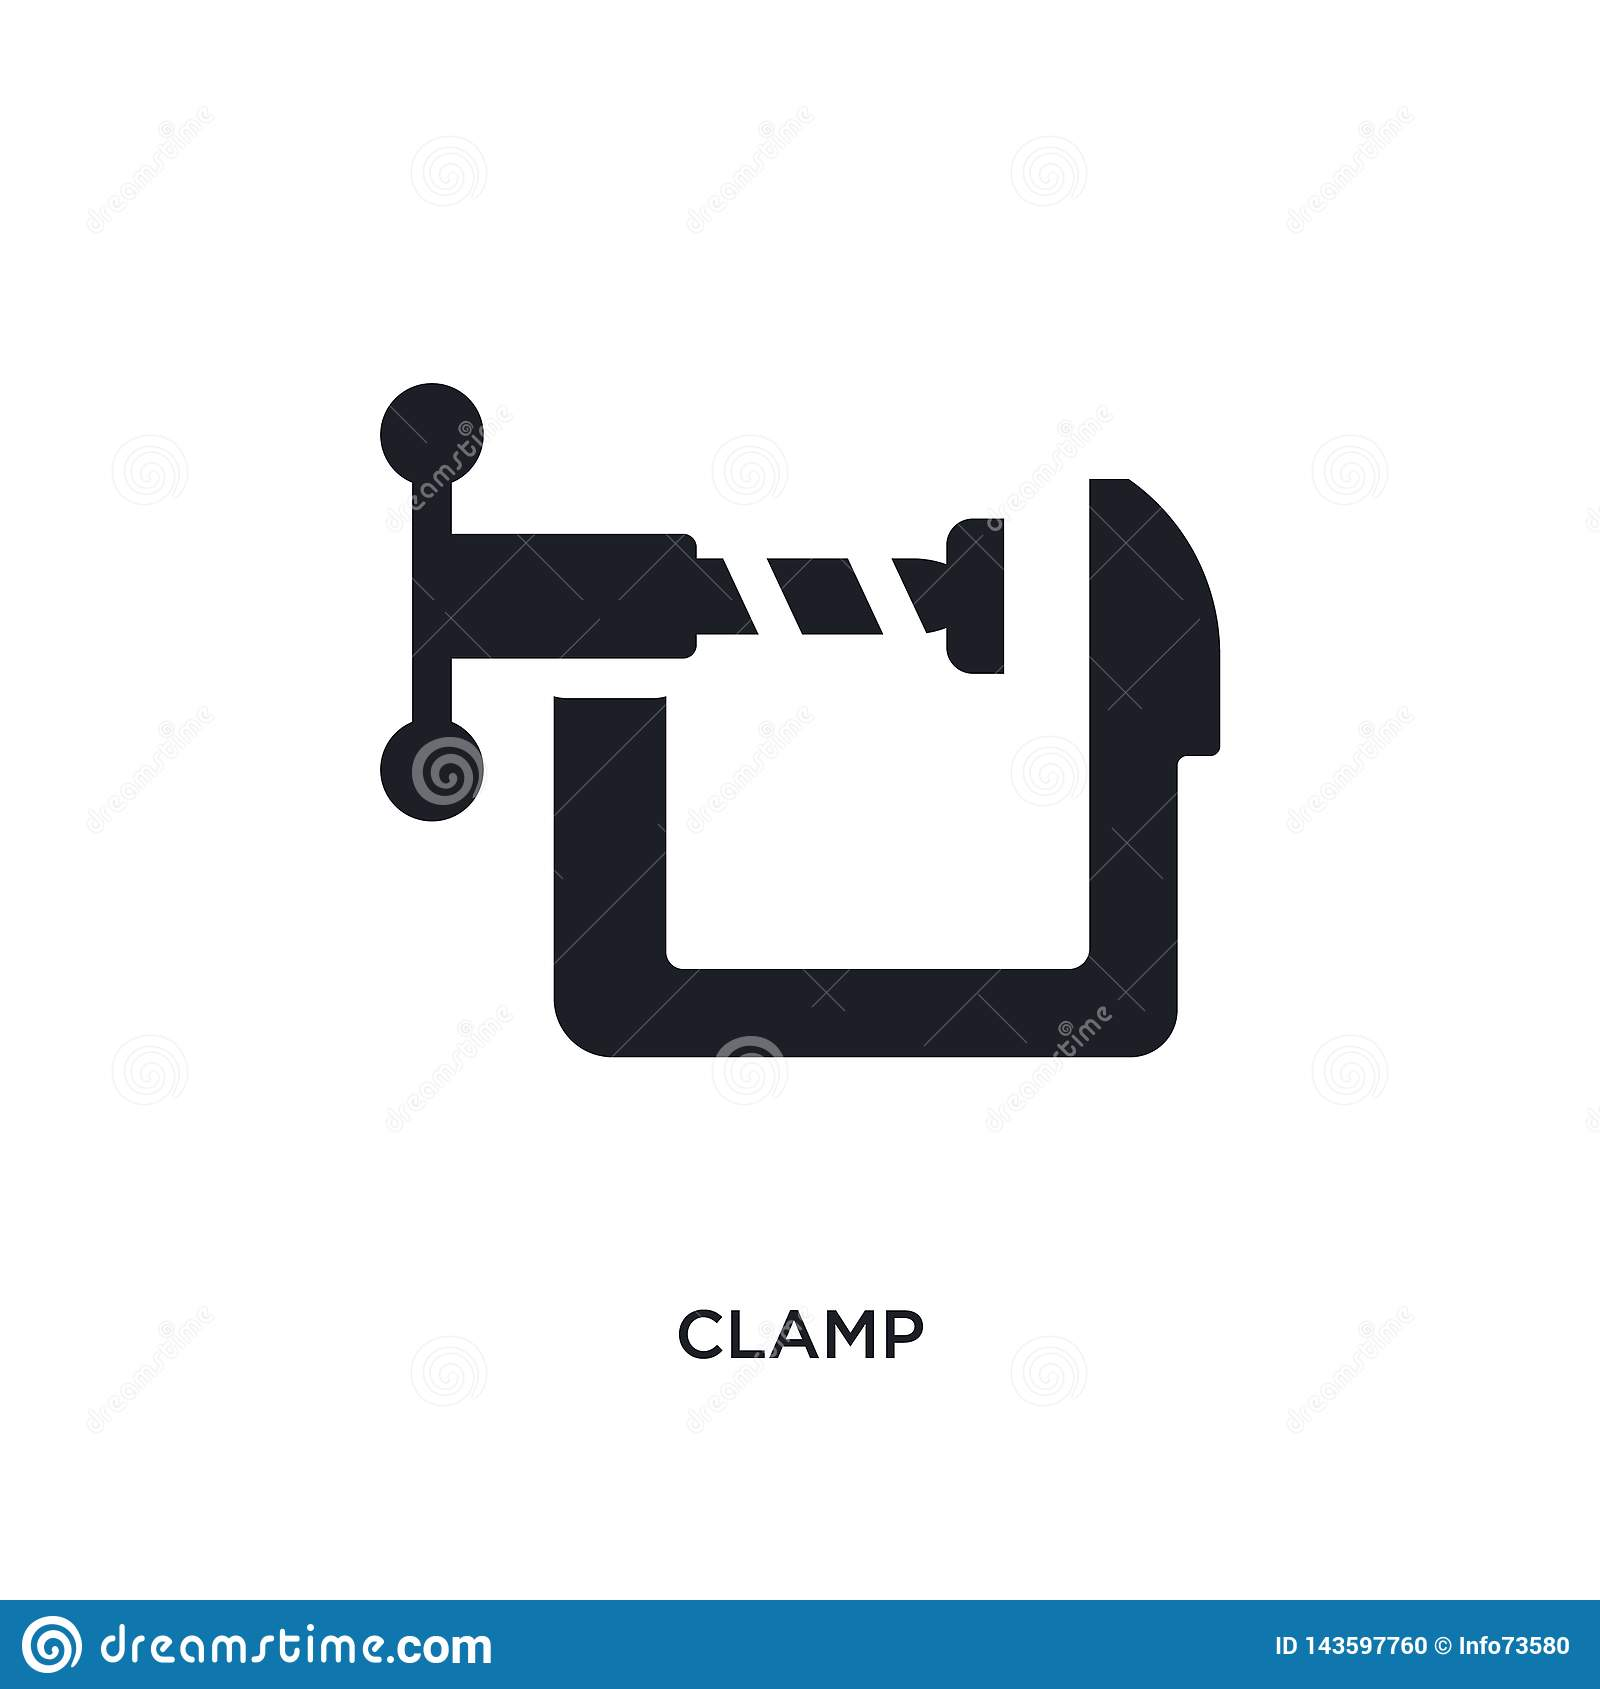 black clamp isolated vector icon. simple element illustration from industry concept vector icons. clamp editable logo symbol